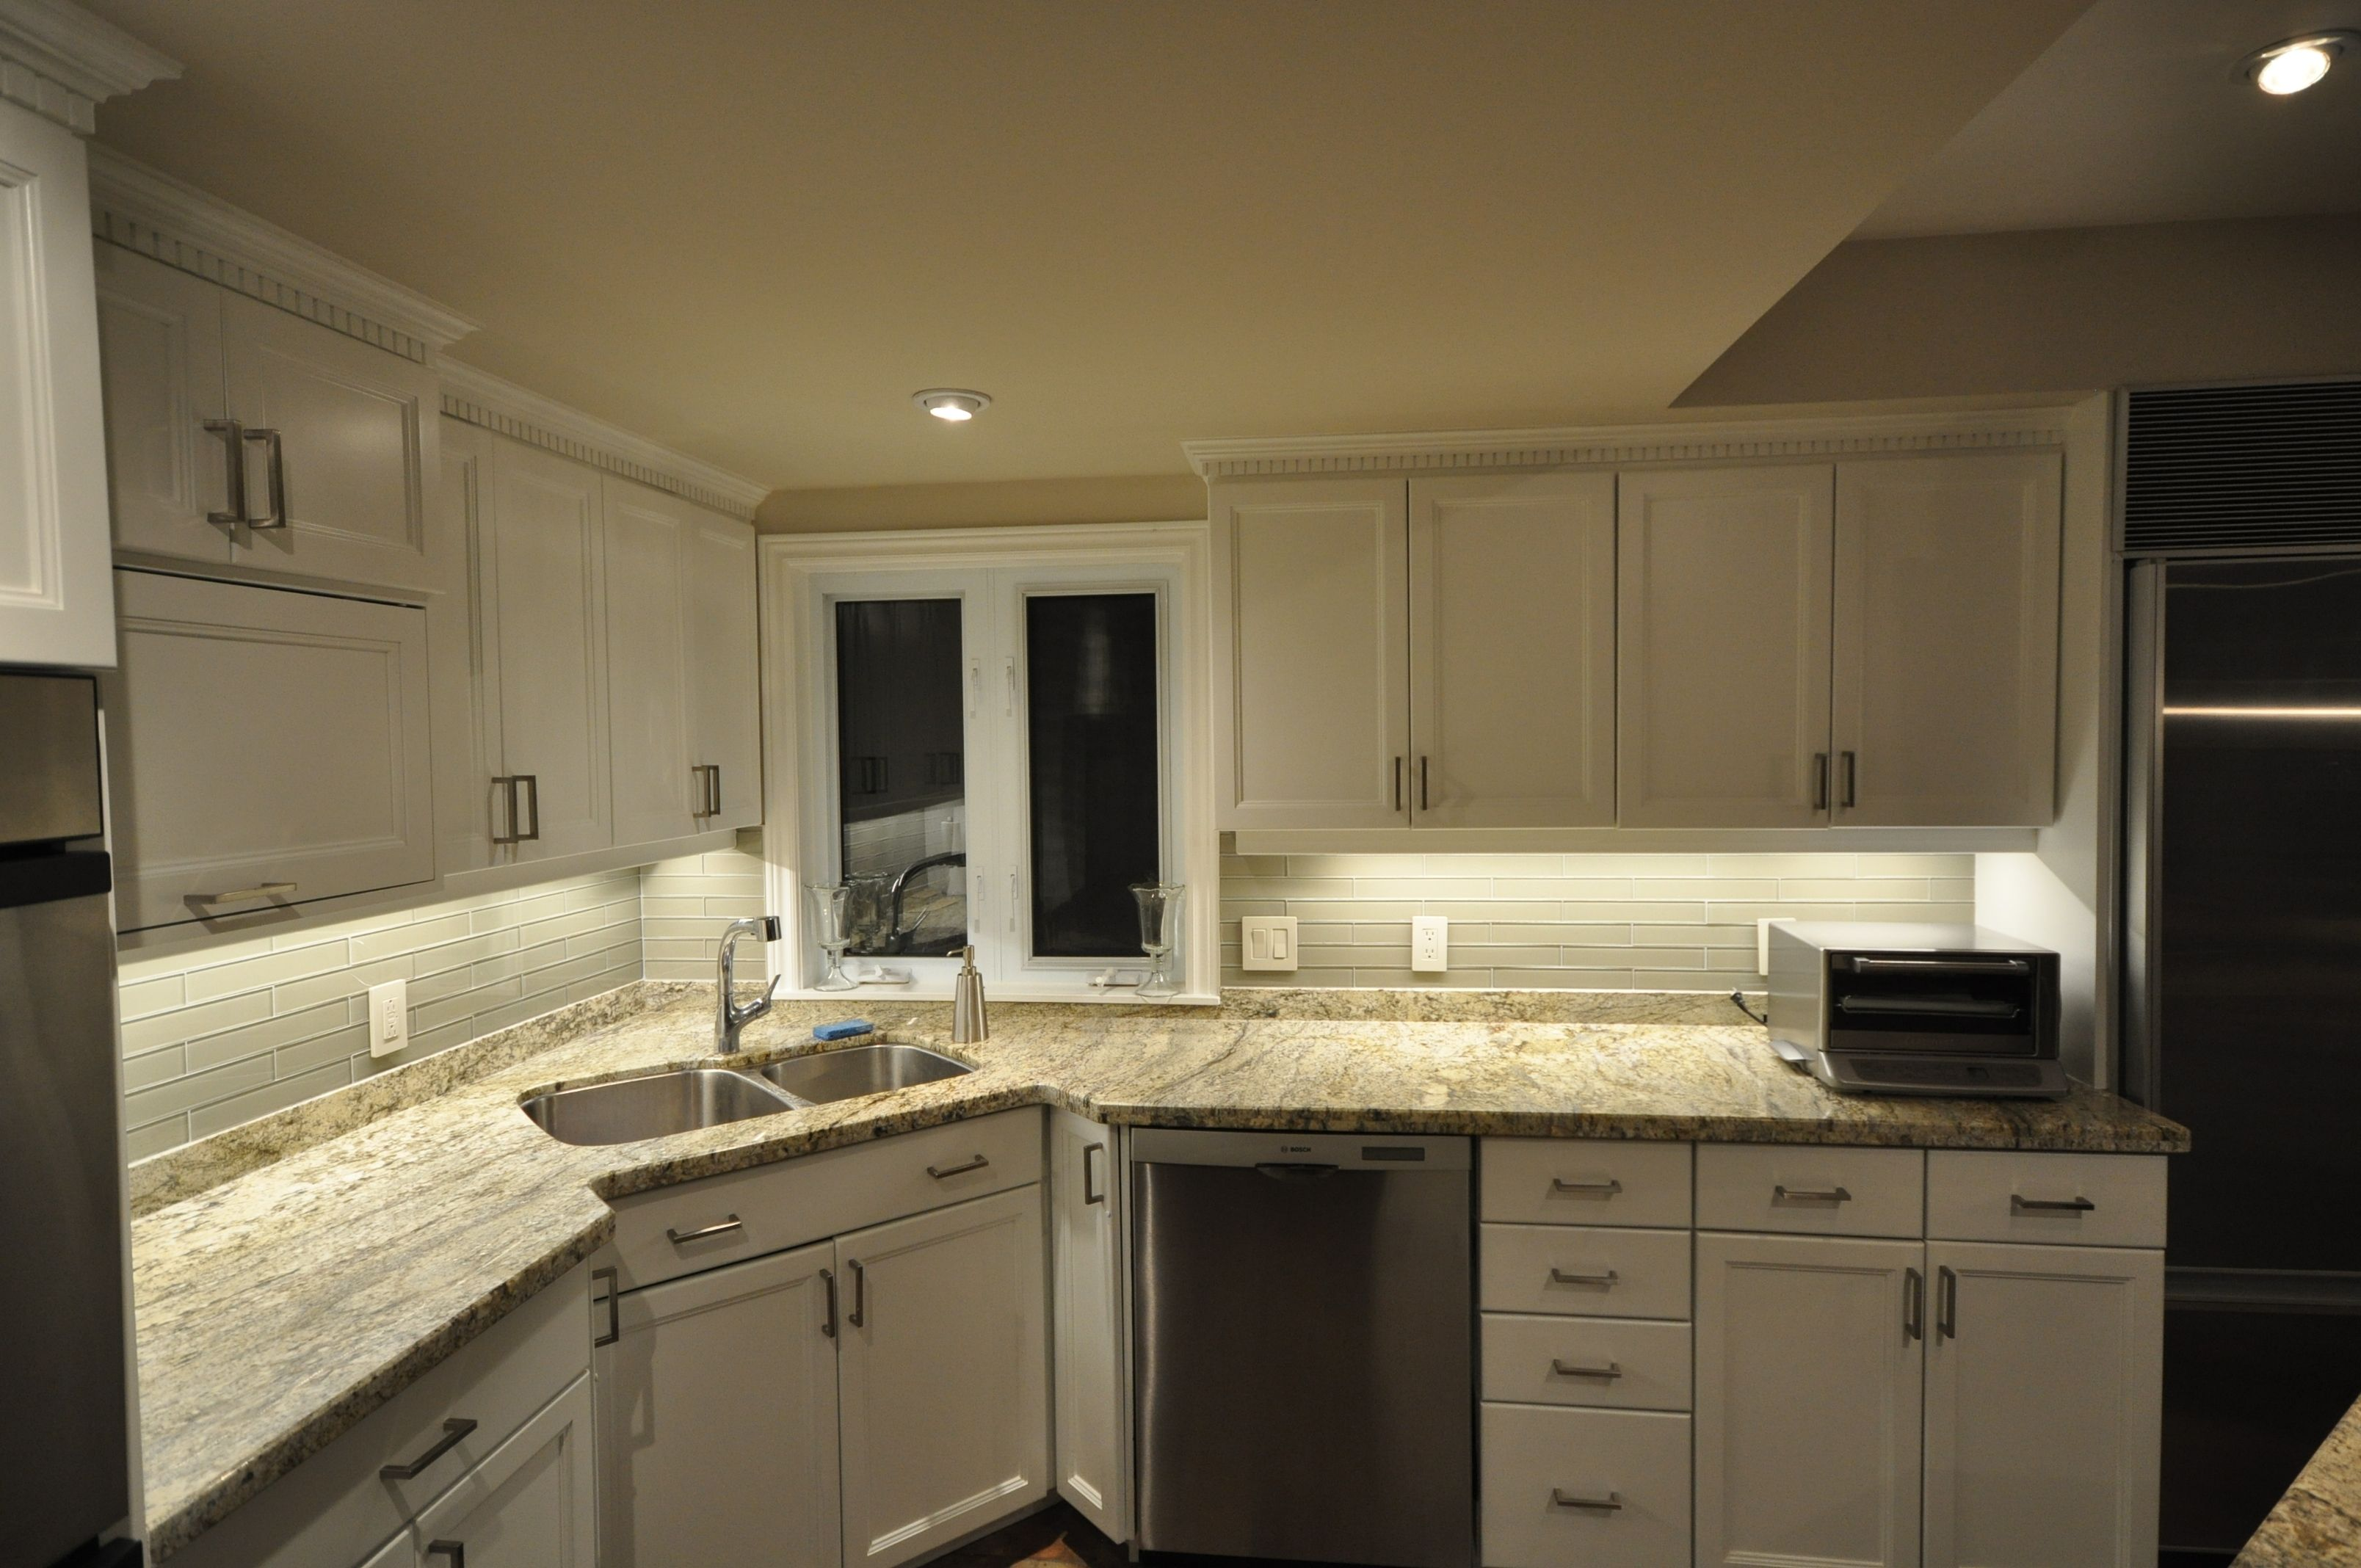 Install lights under kitchen cabinets how cap off the light and hold place underside cabinet best free home design idea inspiration